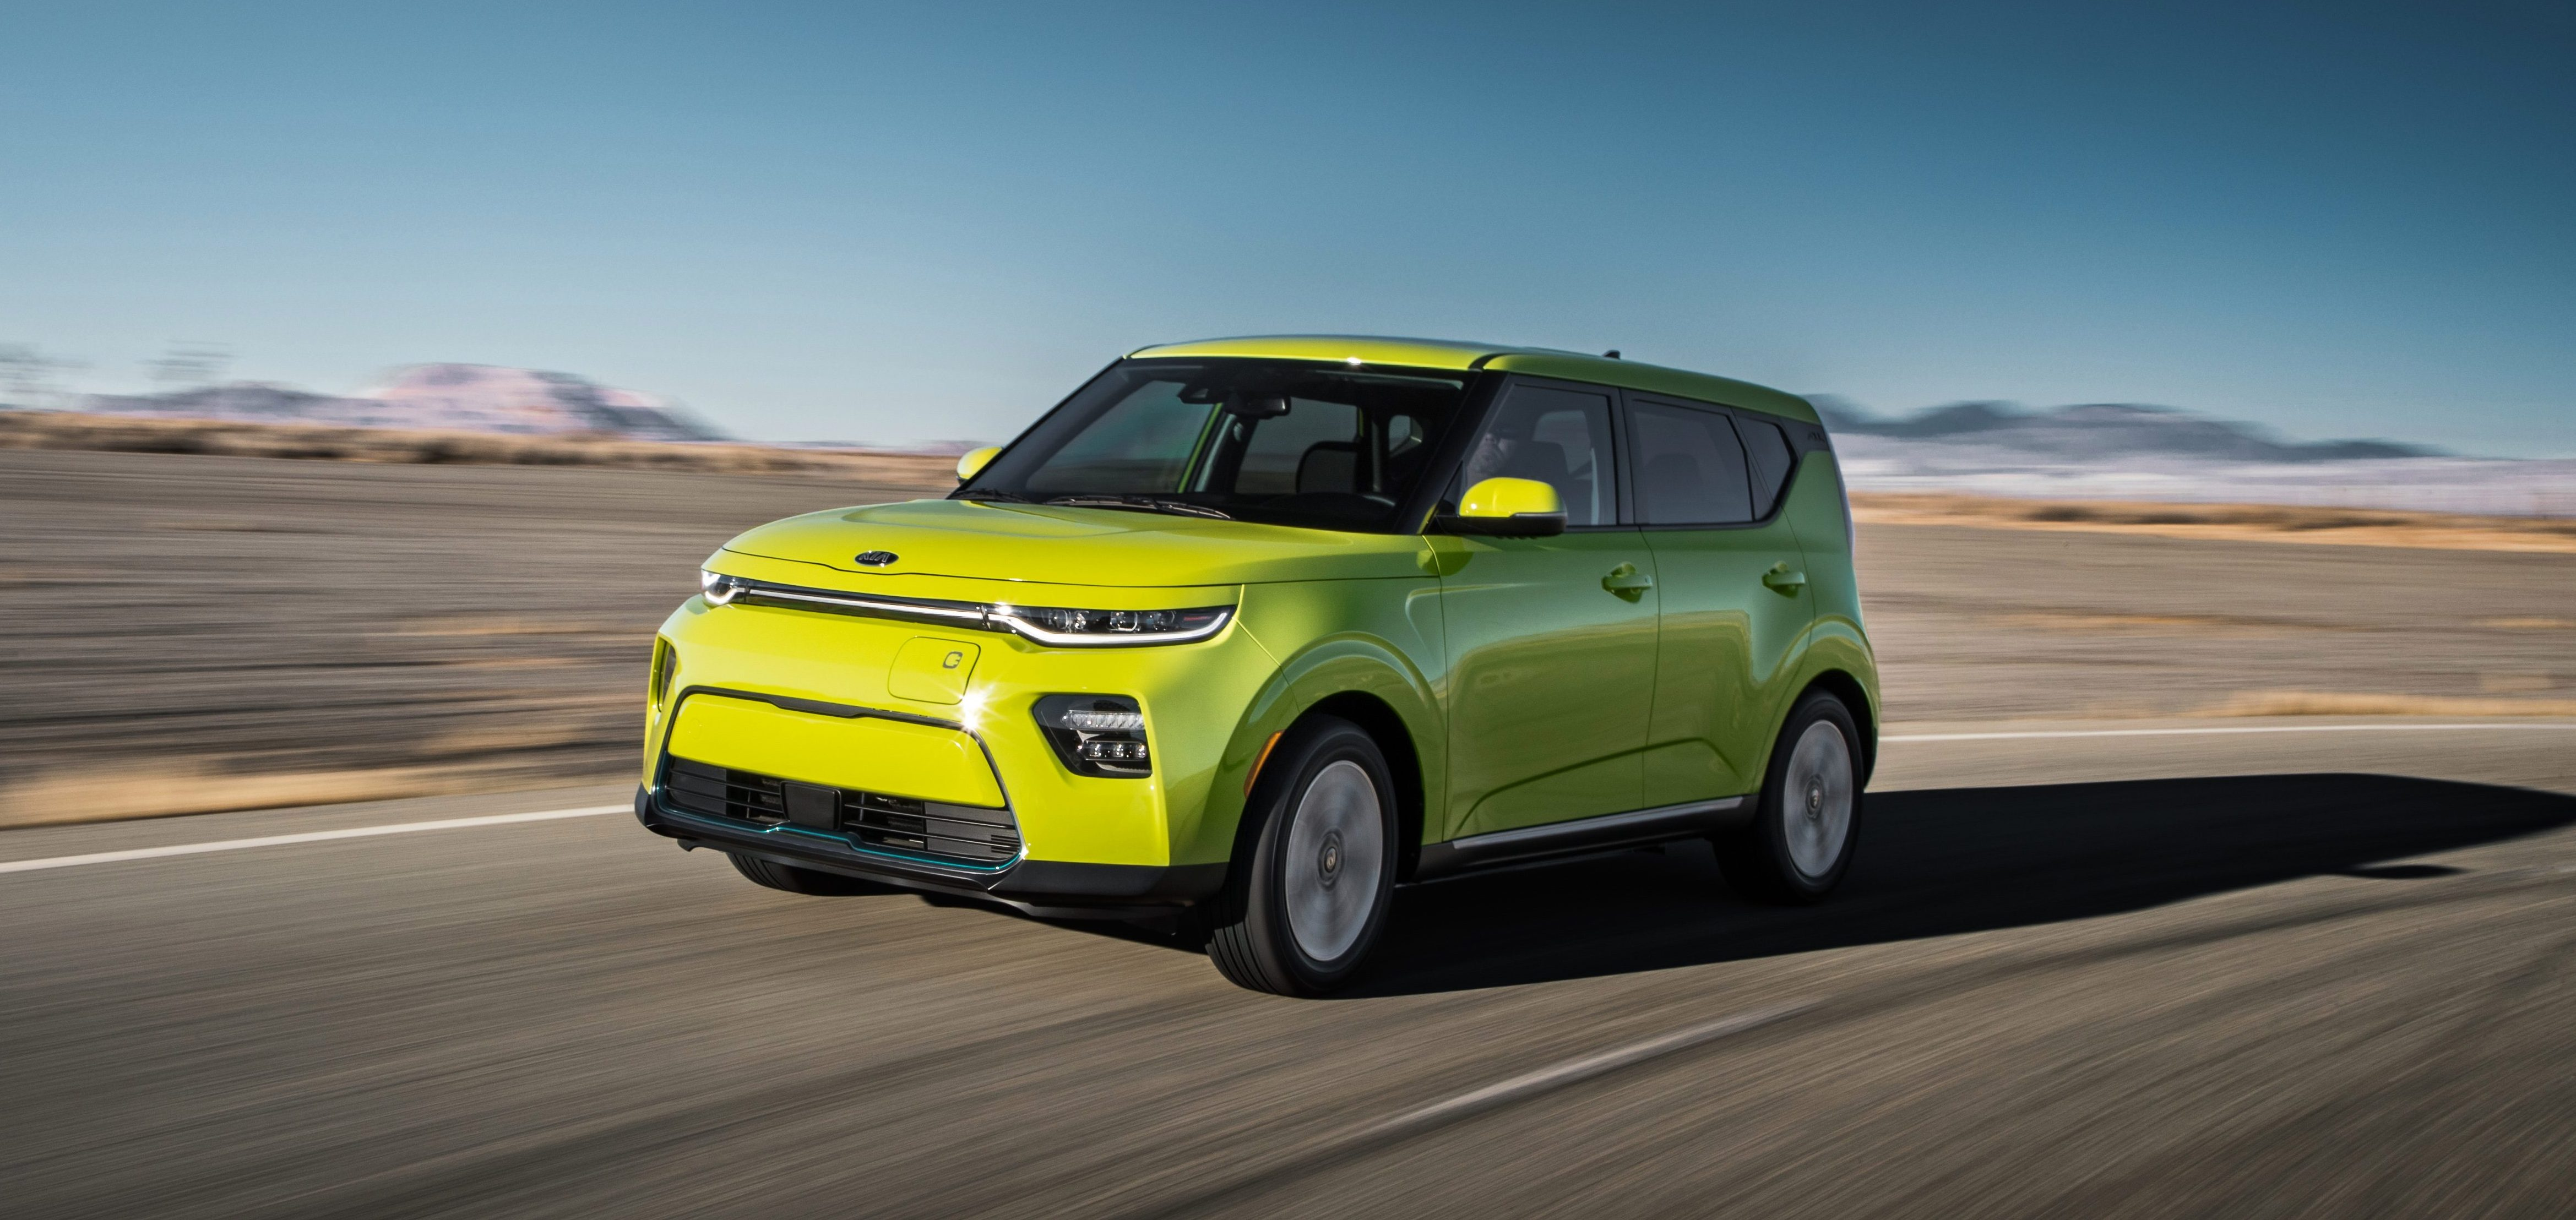 kia unveils 2020 soul ev with 201hp 64kwh 200 mile battery and 100kw ccs charging electrek kia unveils 2020 soul ev with 201hp